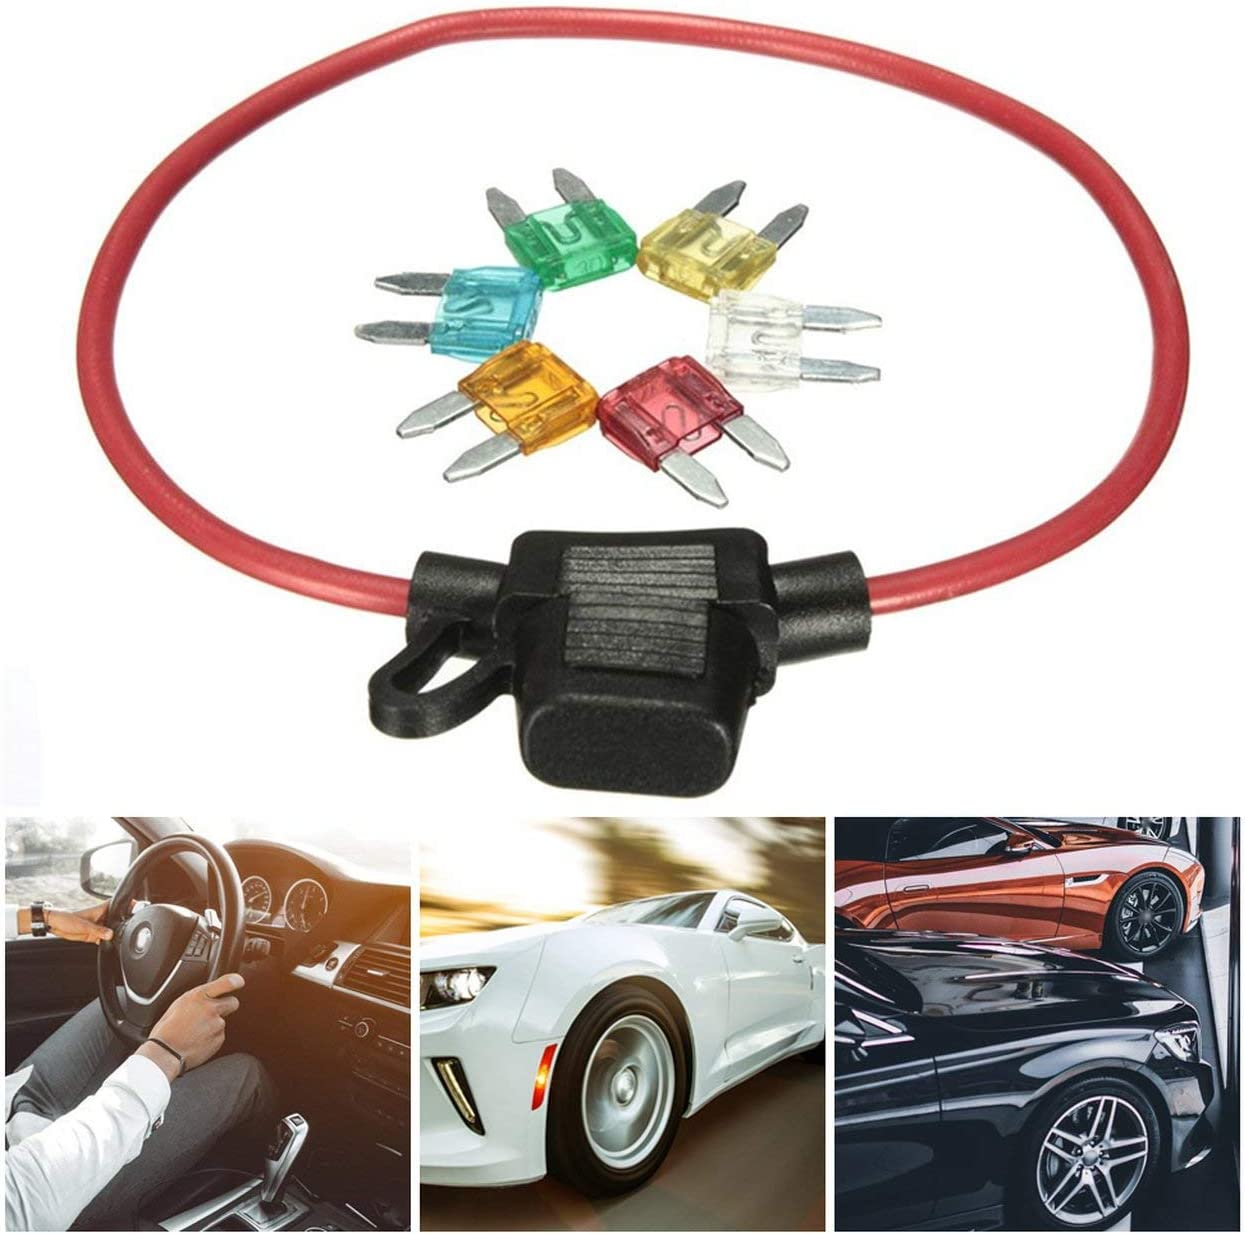 Car Fuse Seat Automobile Fuse Seat Trumpet With 6 Fuse Inserts Safety Wire Inline Fuse Holders Multicolor Jasnyfall